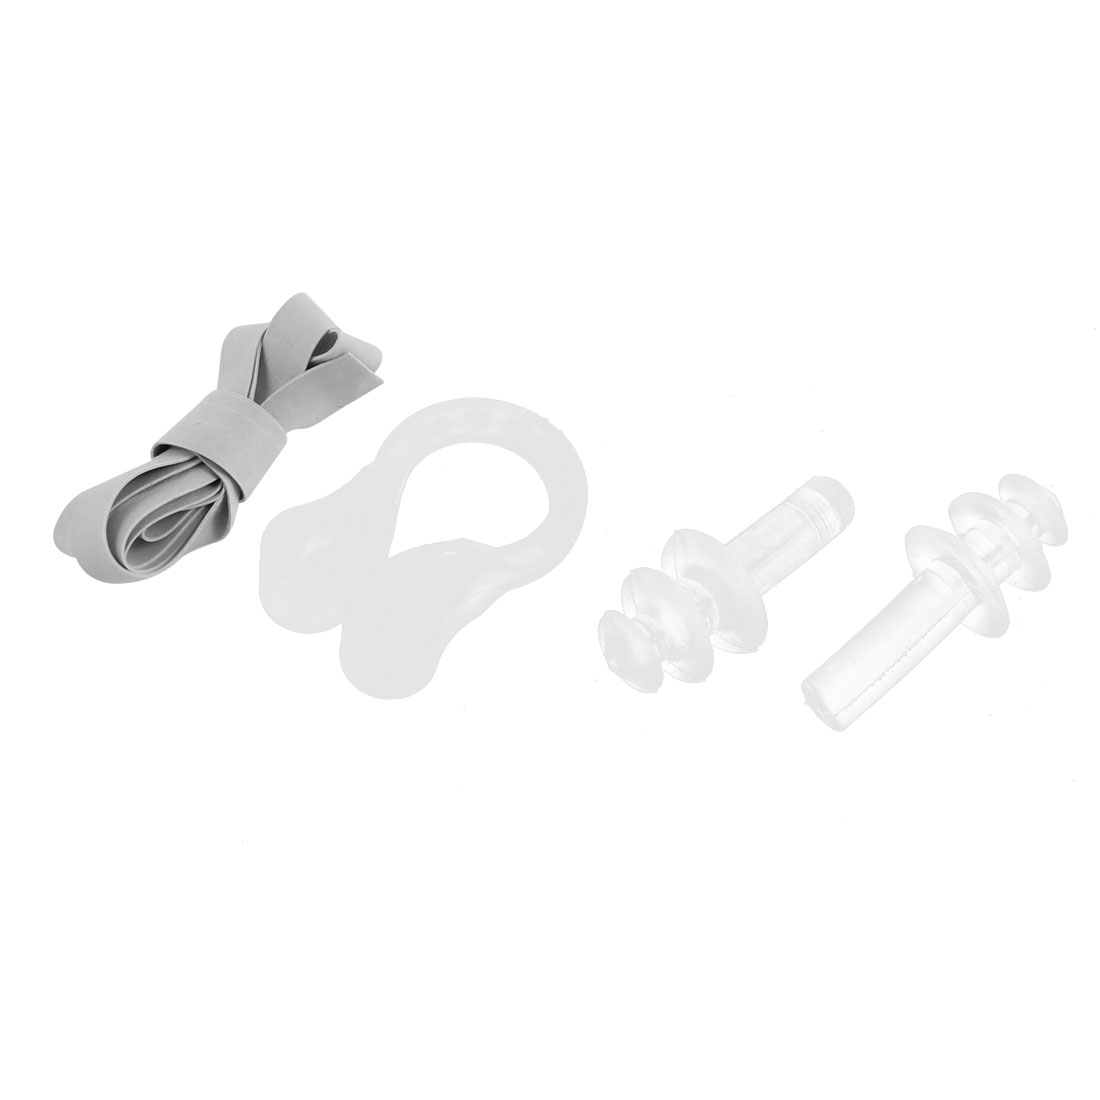 Soft Silicone Transparent Waterproof Hearing Protection Earplug